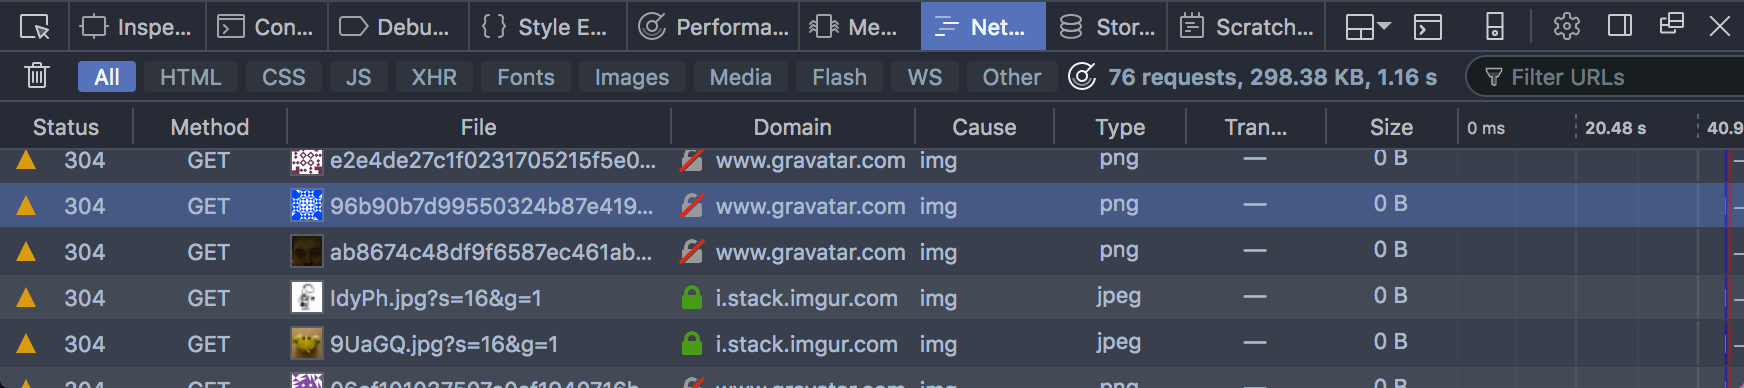 Firefox Network Inspector showing insecure requests to www.gravatar.com